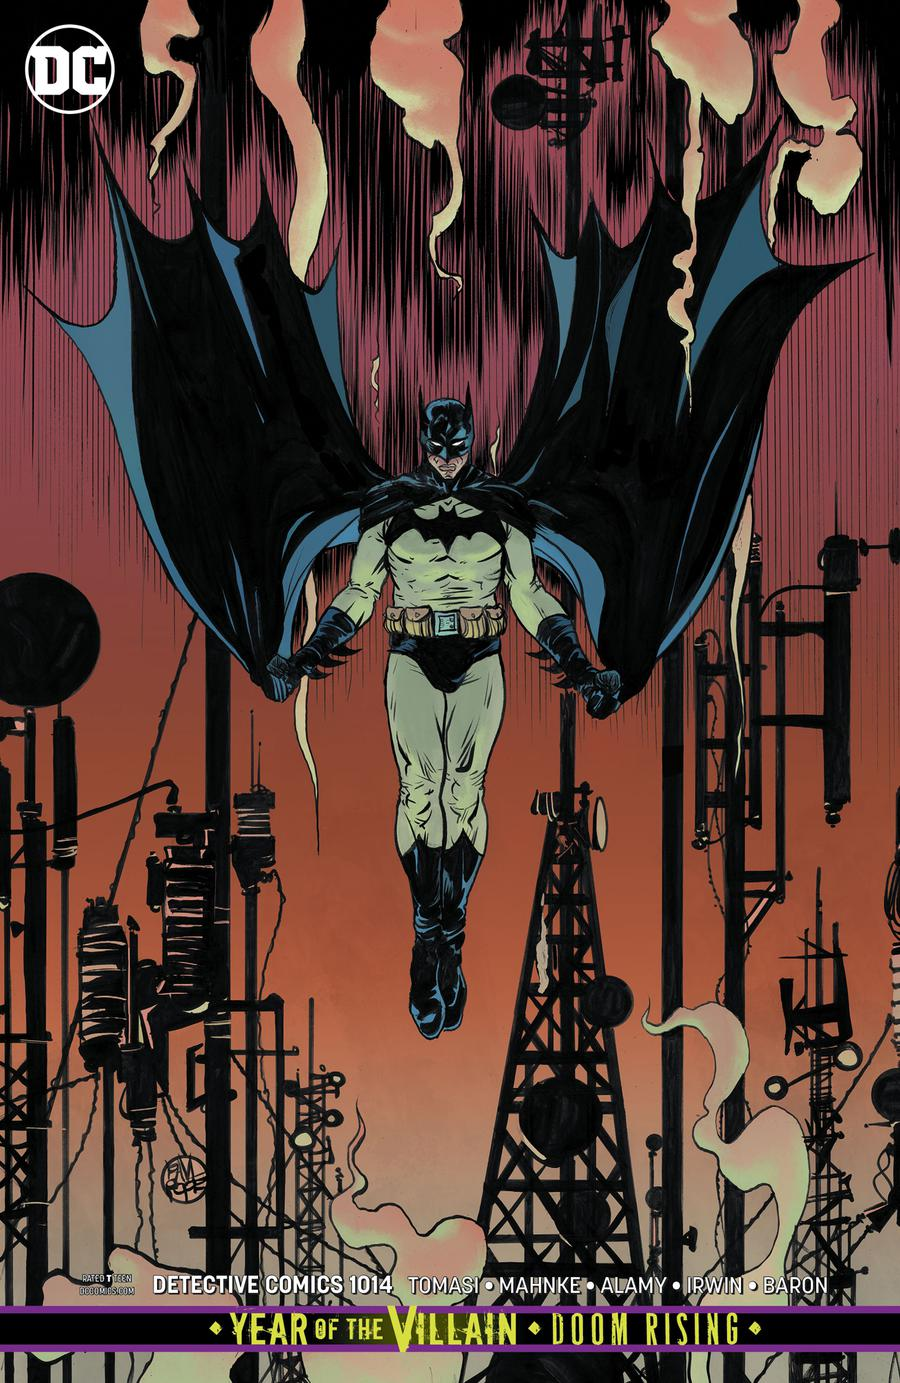 Detective Comics Vol 2 #1014 Cover B Variant Paul Pope Card Stock Cover (Year Of The Villain Doom Rising Tie-In)